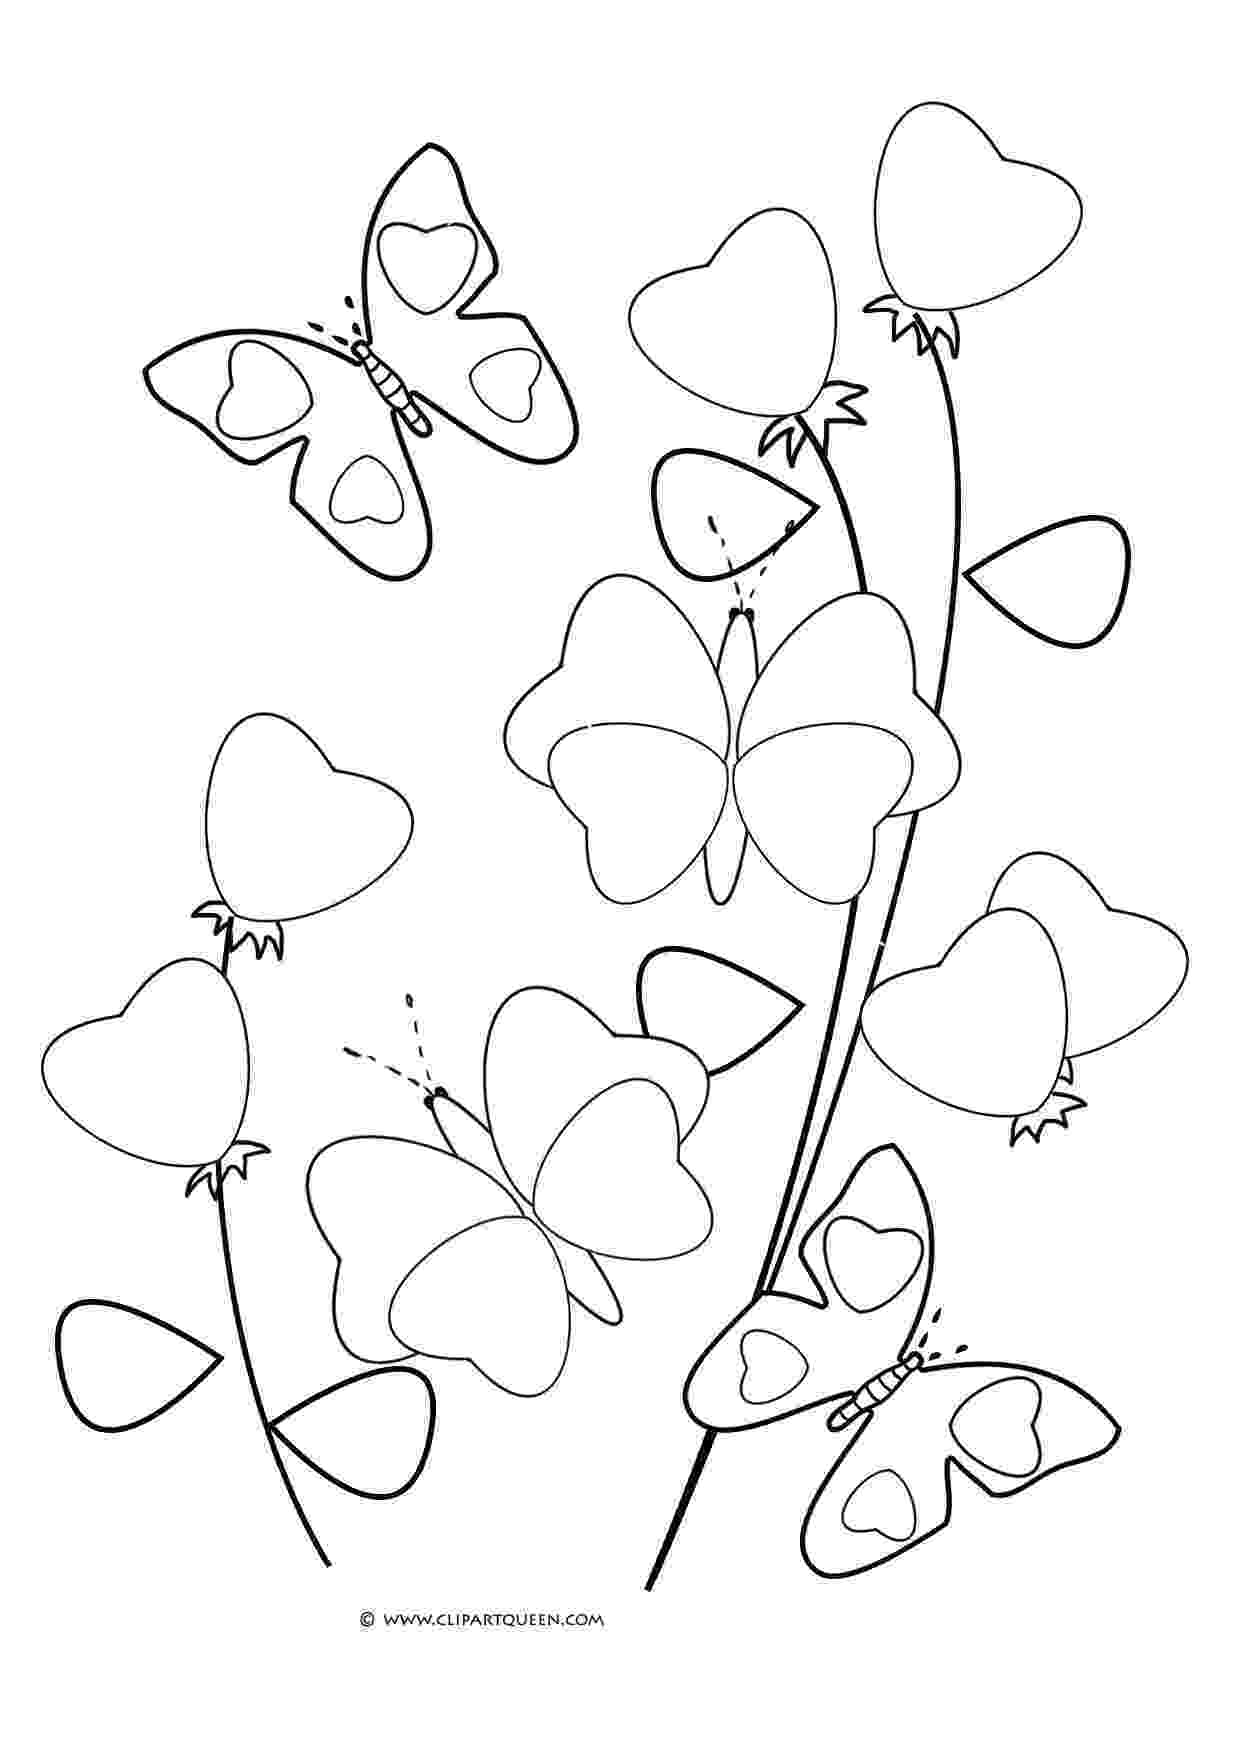 coloring pages heart 15 valentine39s day coloring pages heart pages coloring